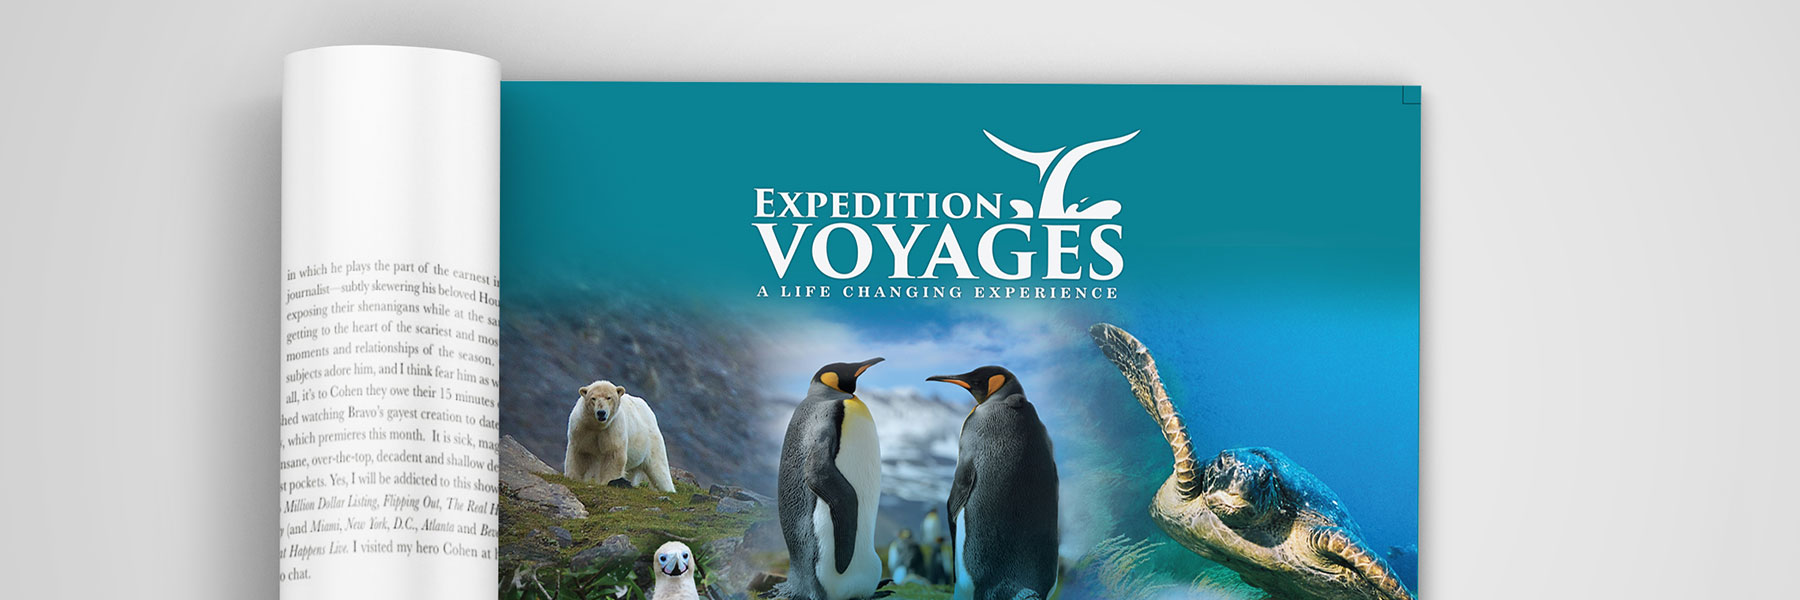 Expedition Voyages